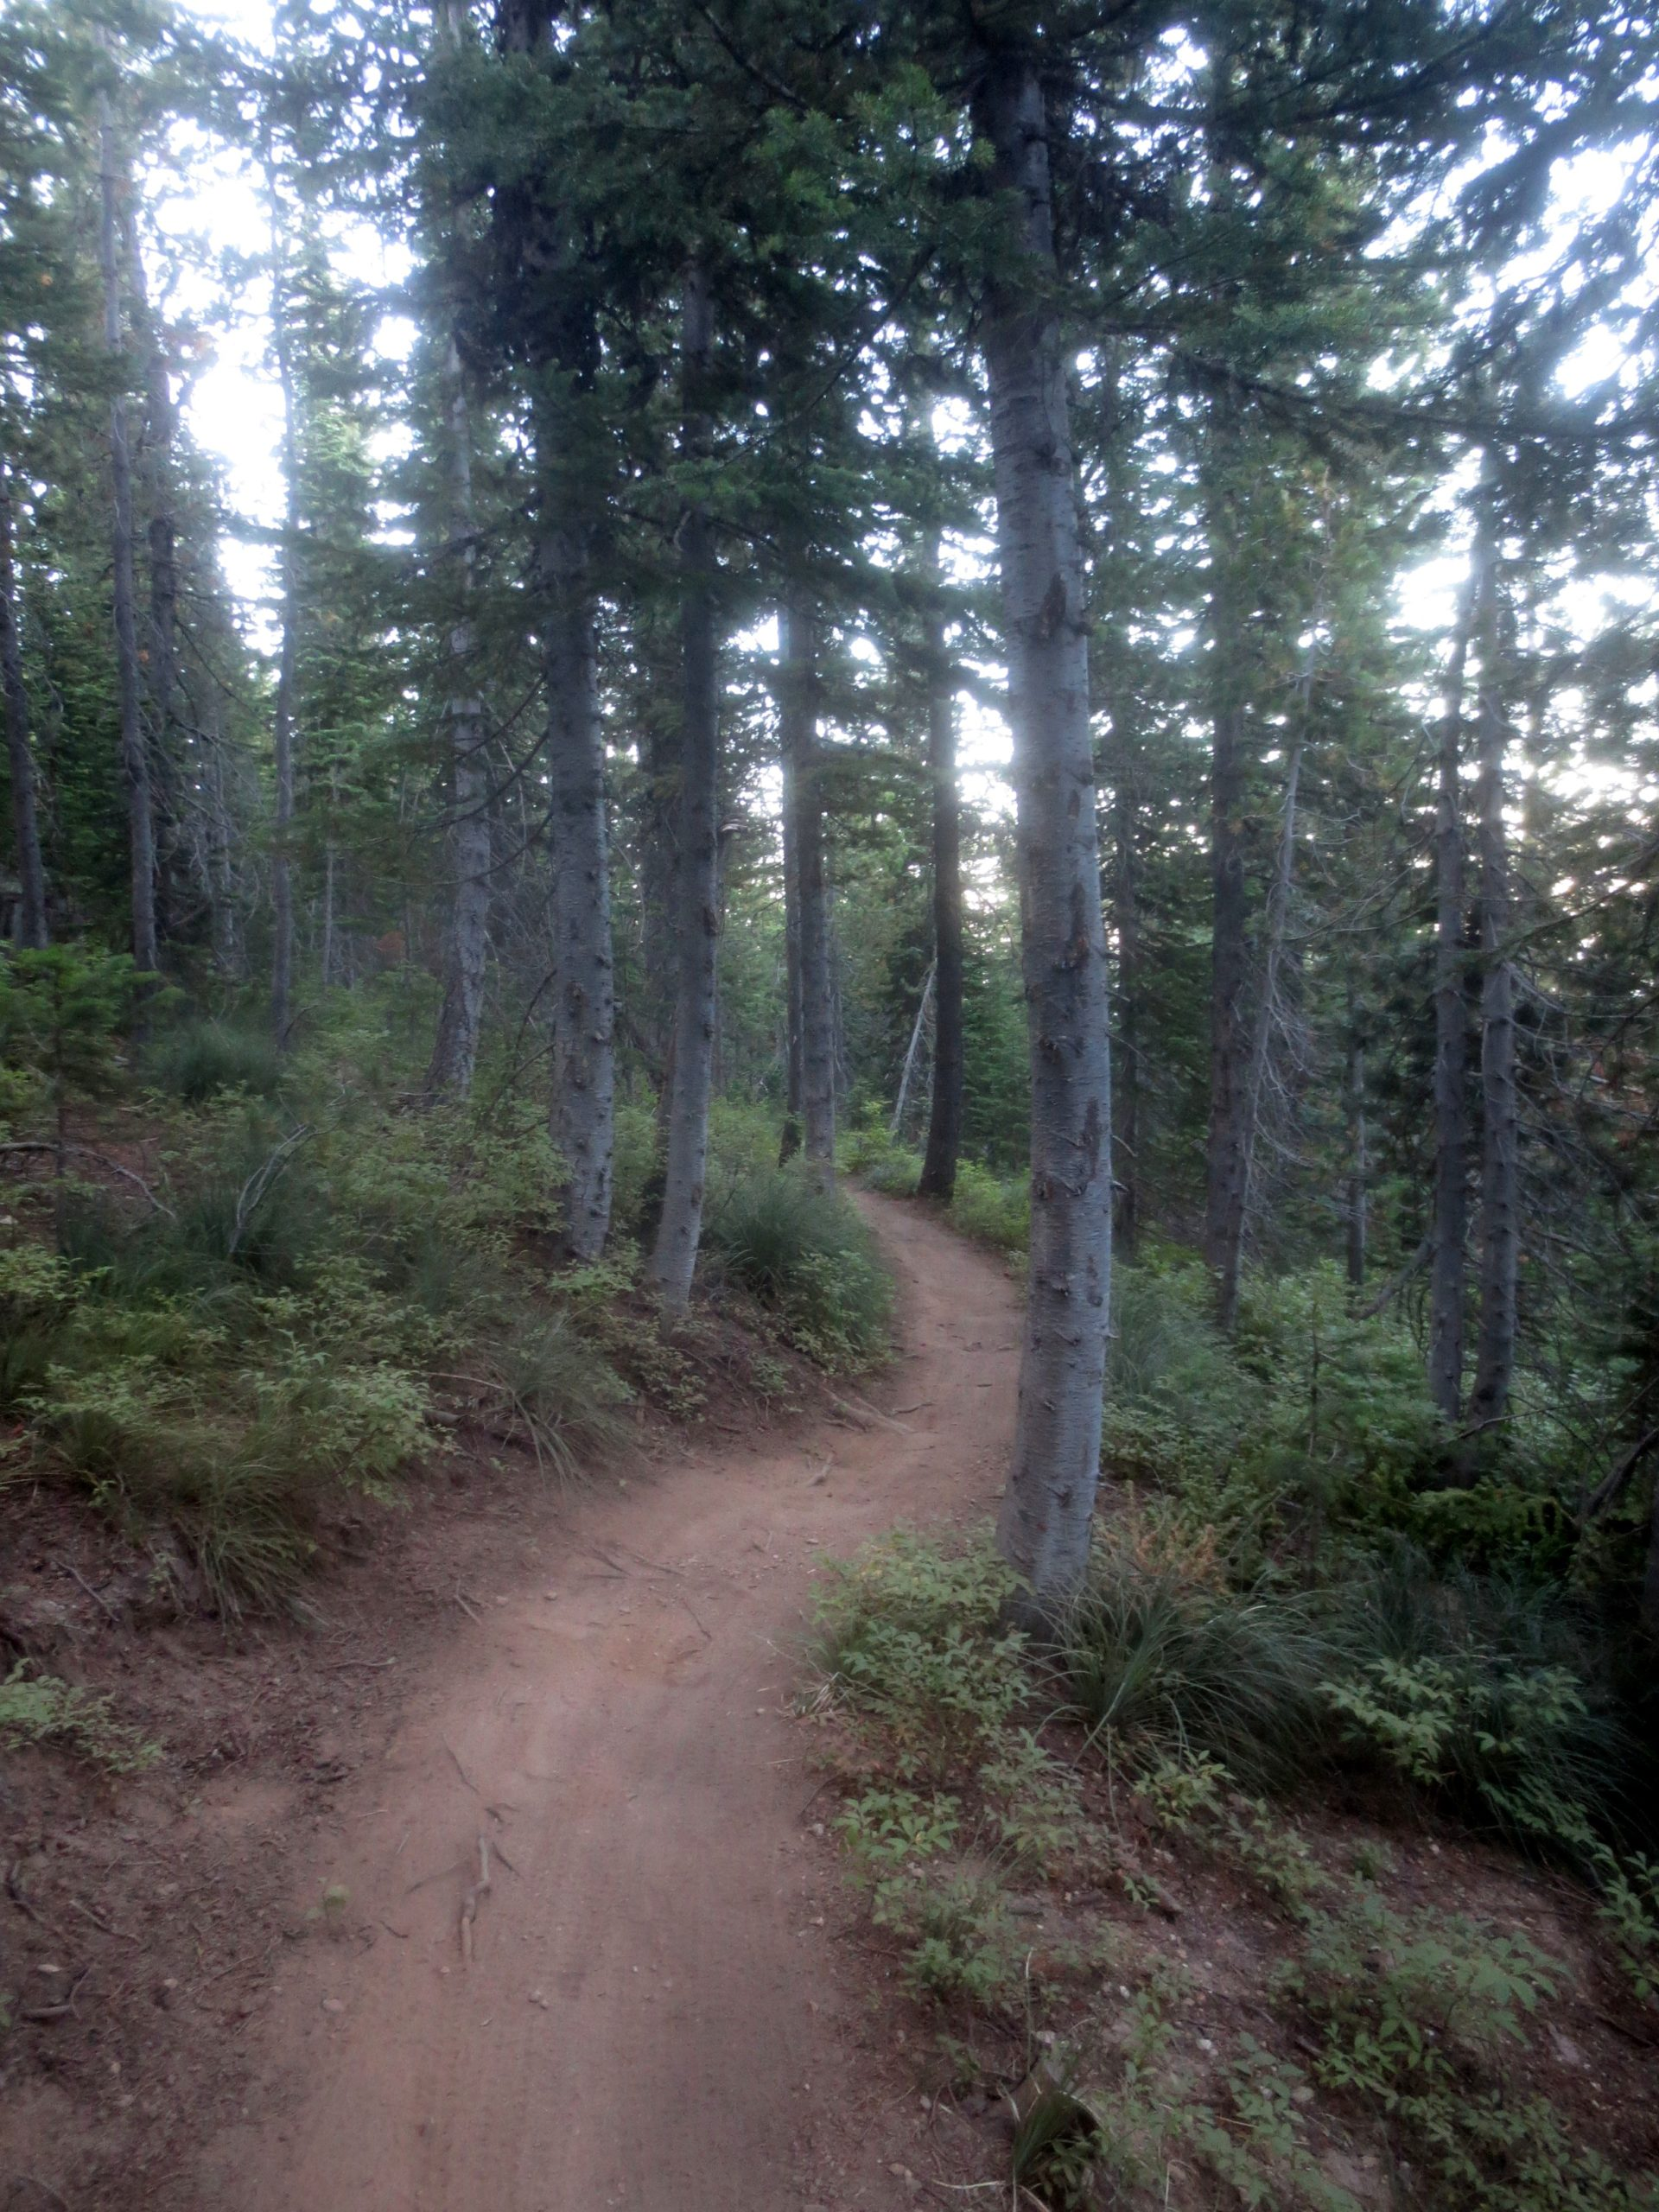 packed dirt trail winding through a forest